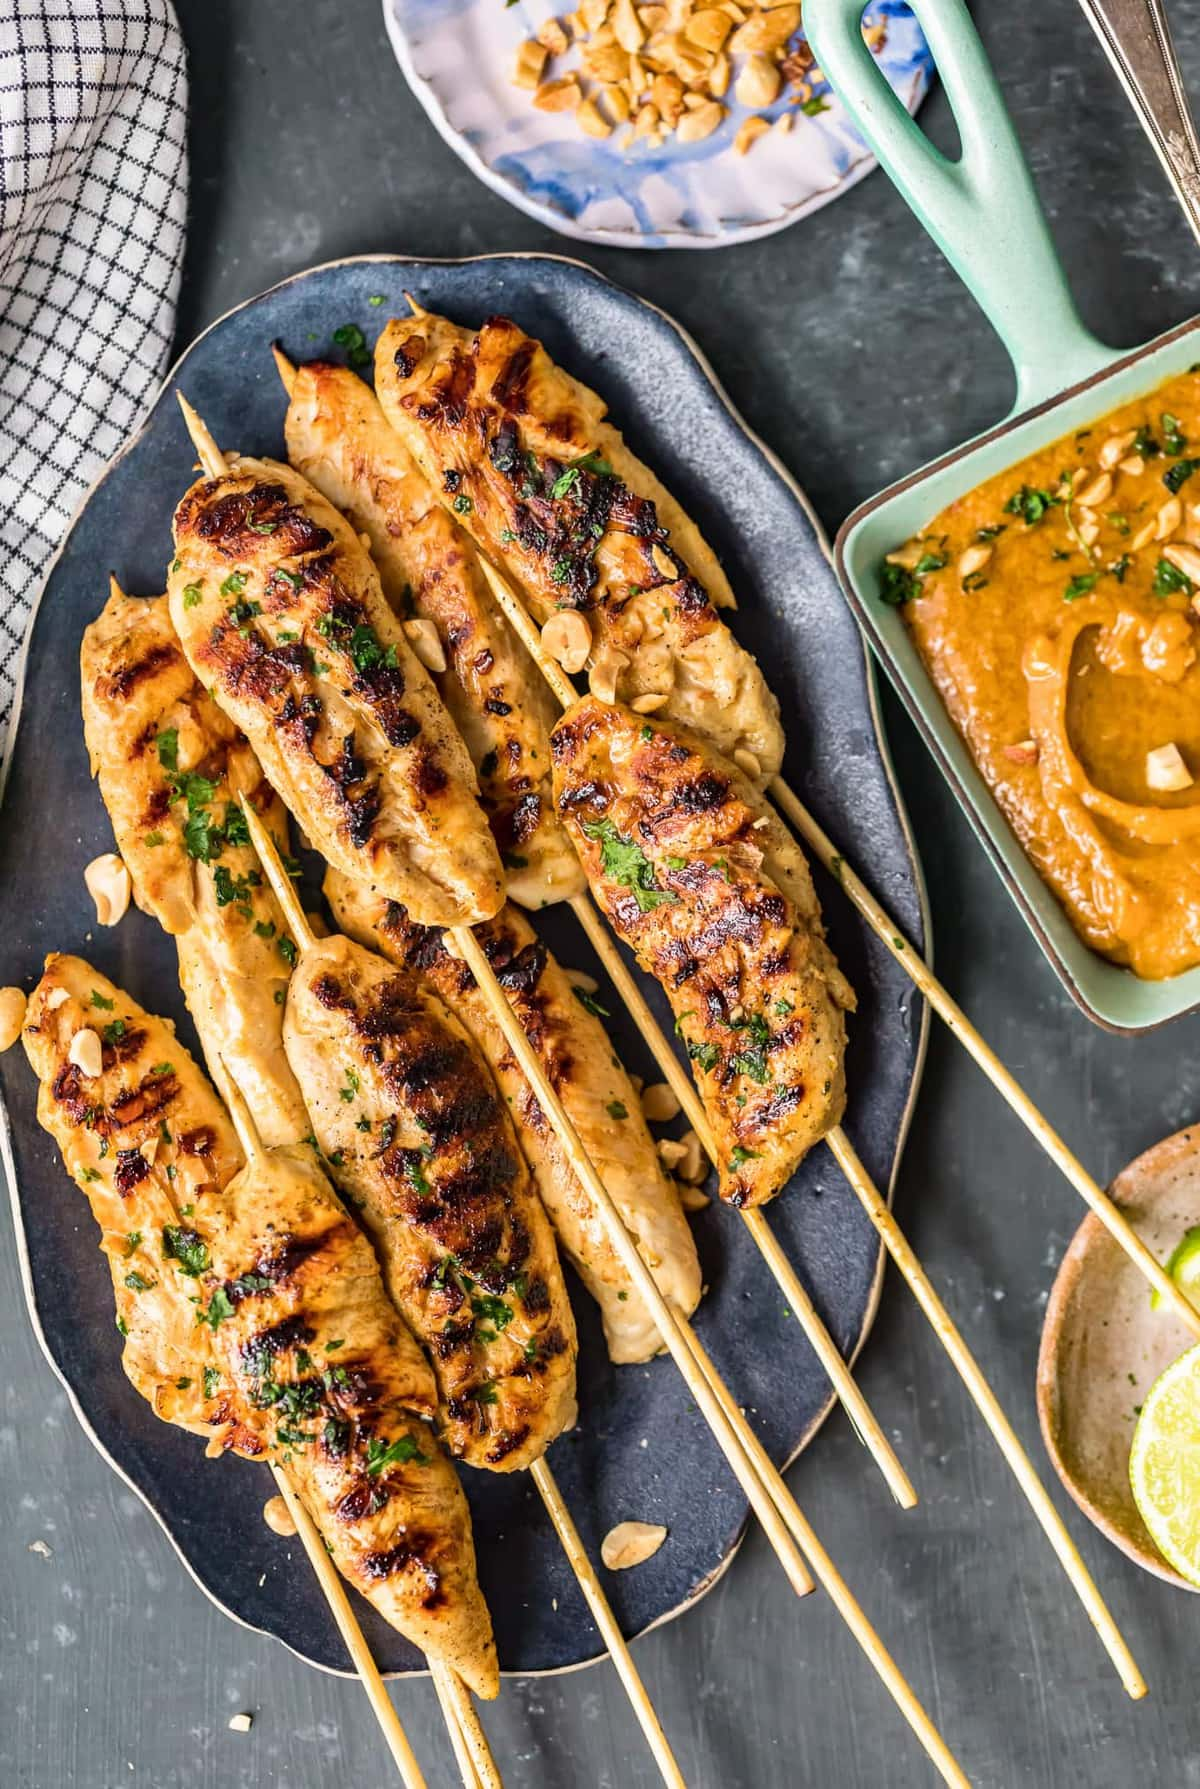 chicken skewers on a plate next to a bowl of peanut sauce